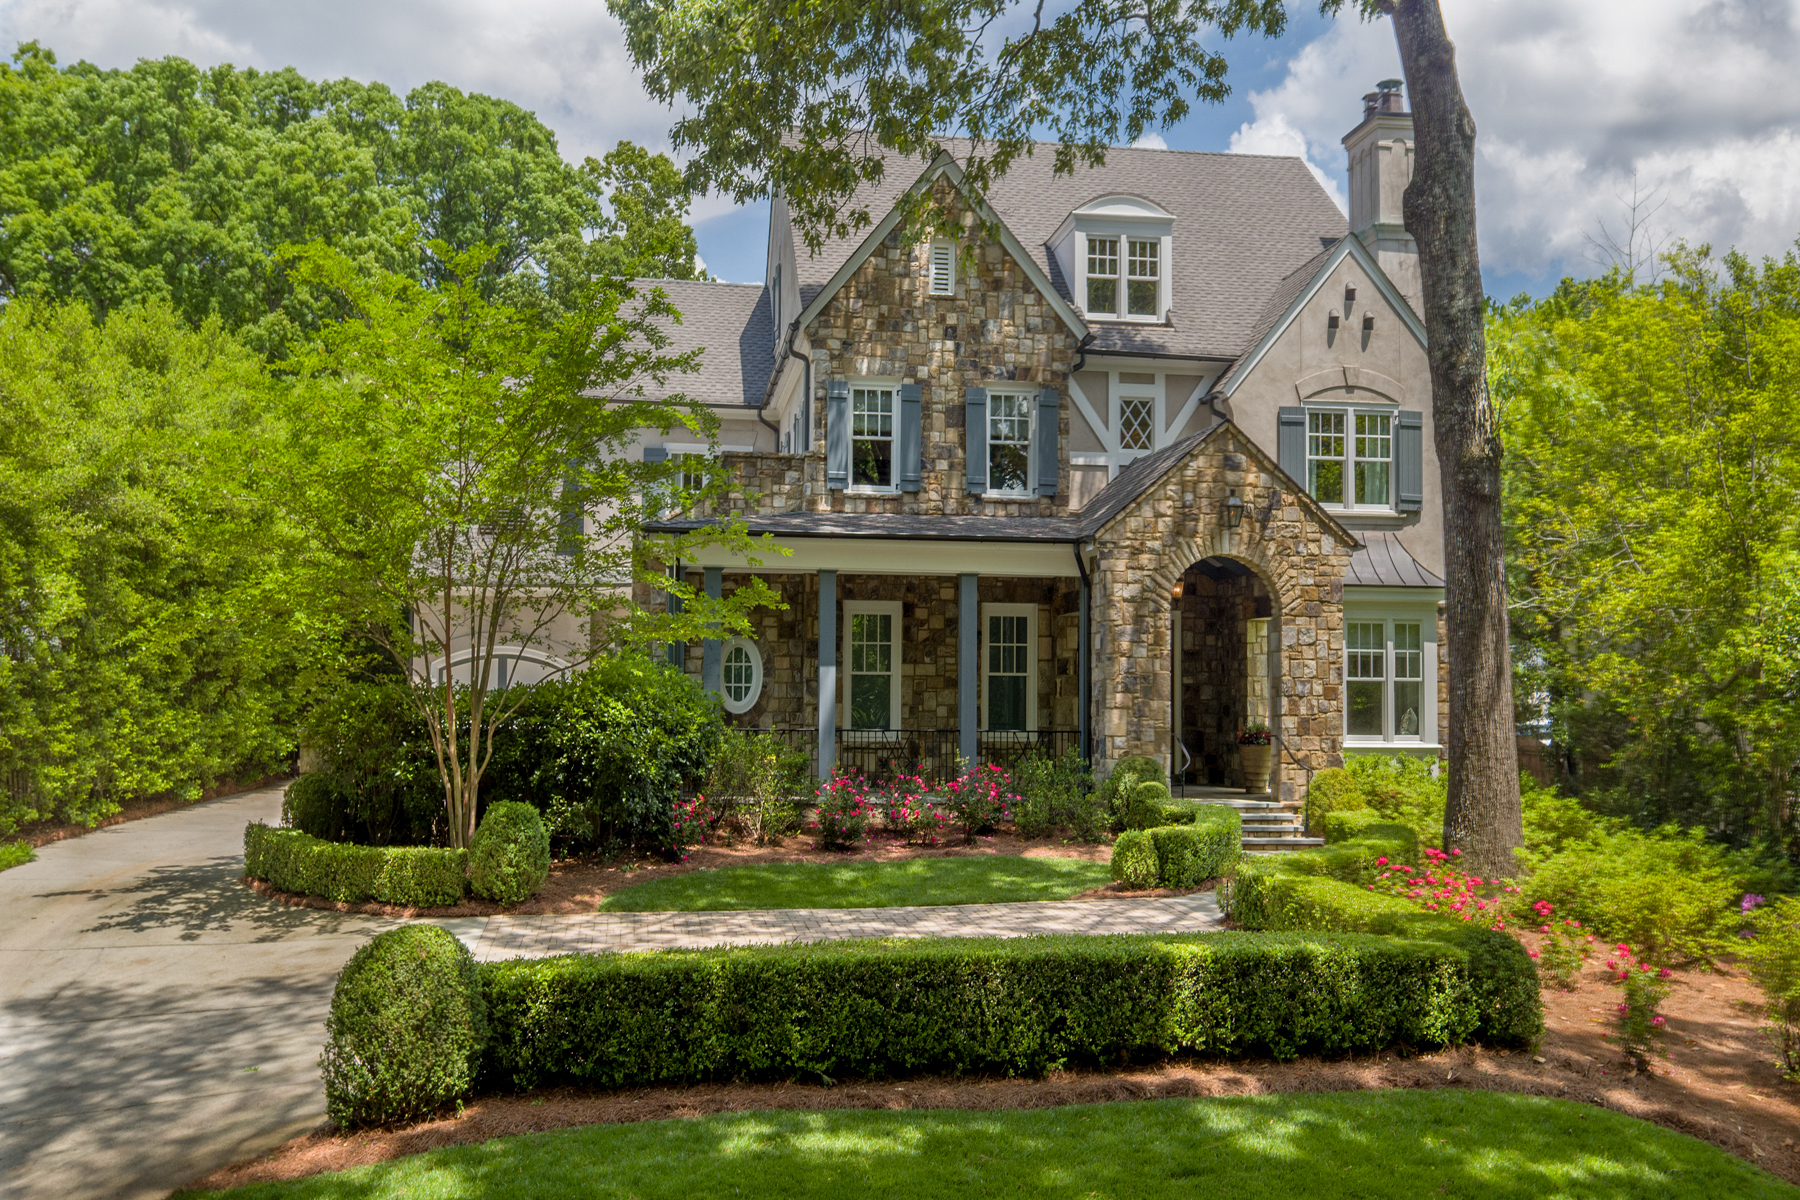 Maison unifamiliale pour l Vente à Spectacular Home In A Renowned Location 67 Blackland Road Tuxedo Park, Atlanta, Georgia, 30342 États-Unis